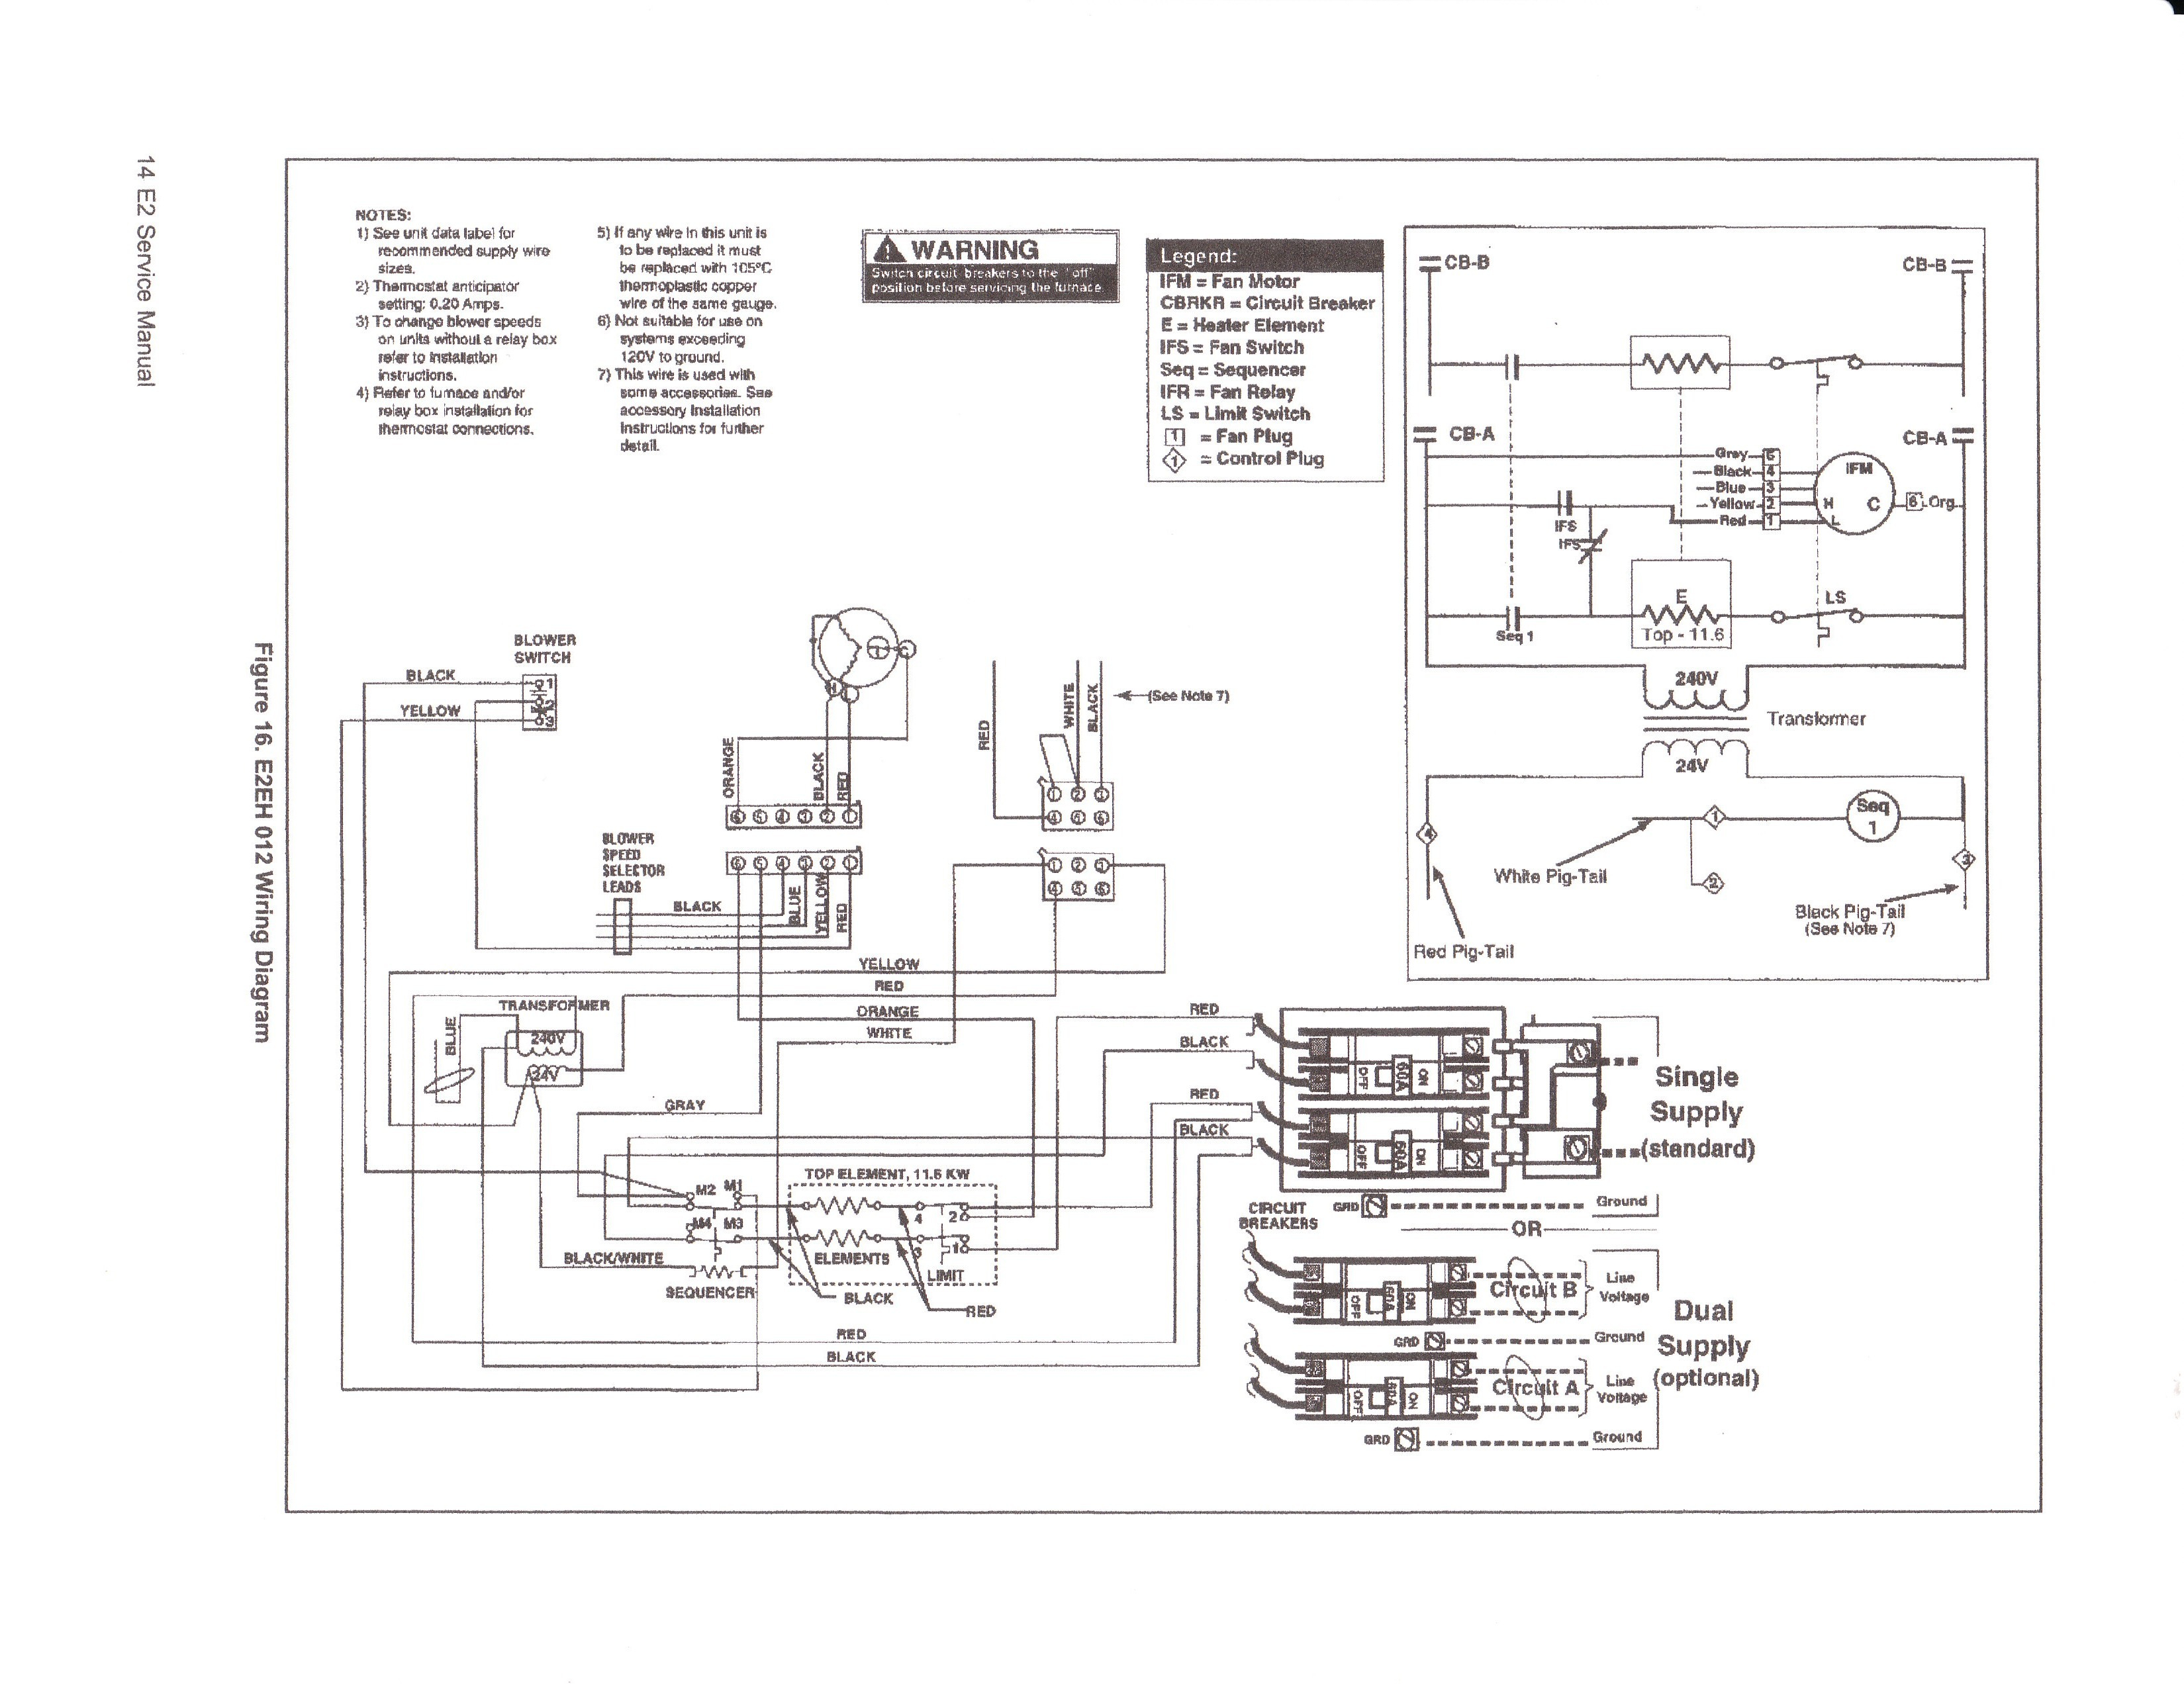 goodman electric furnace wiring diagram of window type air conditioning for mobile home gallery